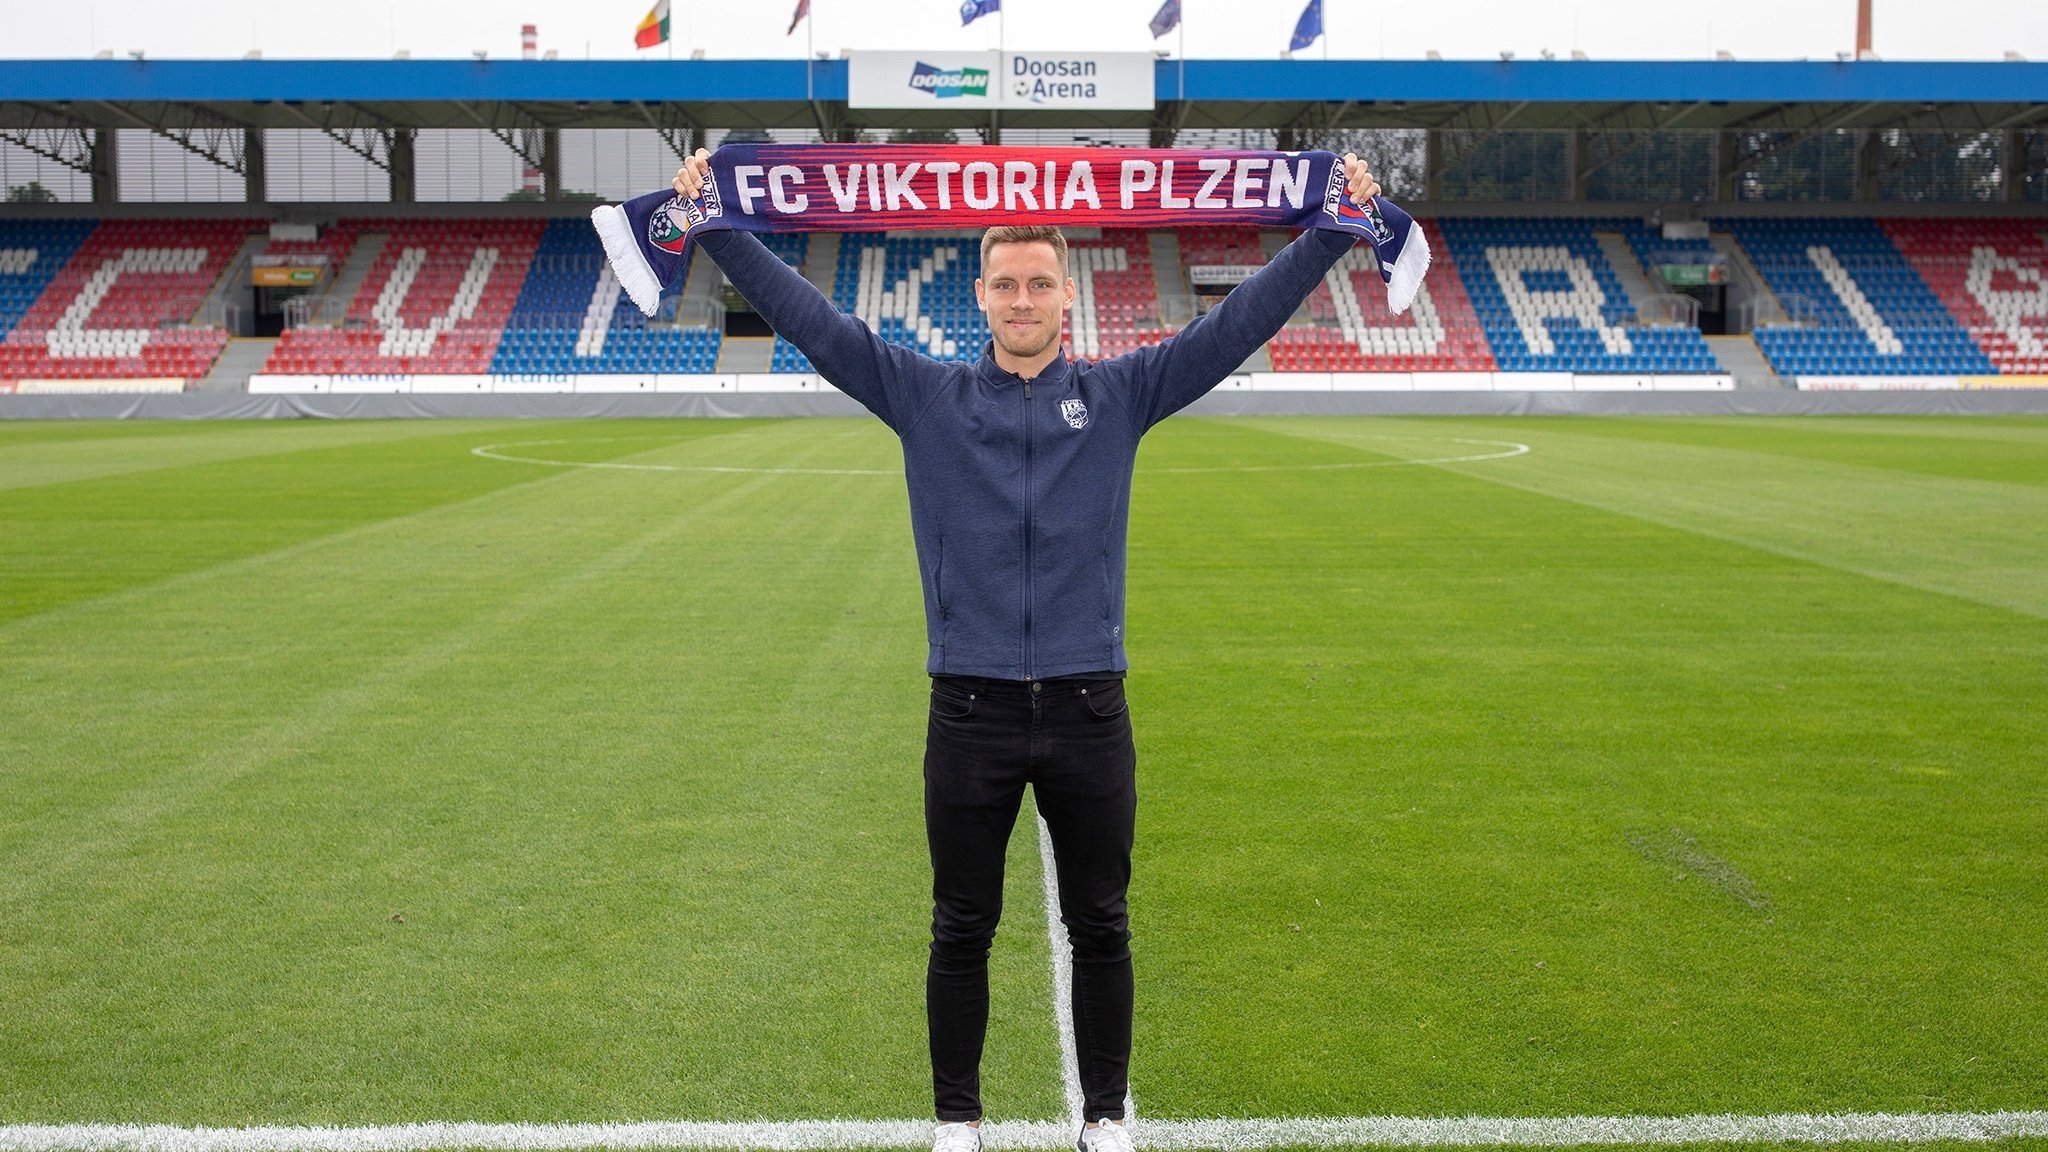 Viktoria has announced a new signing from Olomouc – Lukáš Kalvach